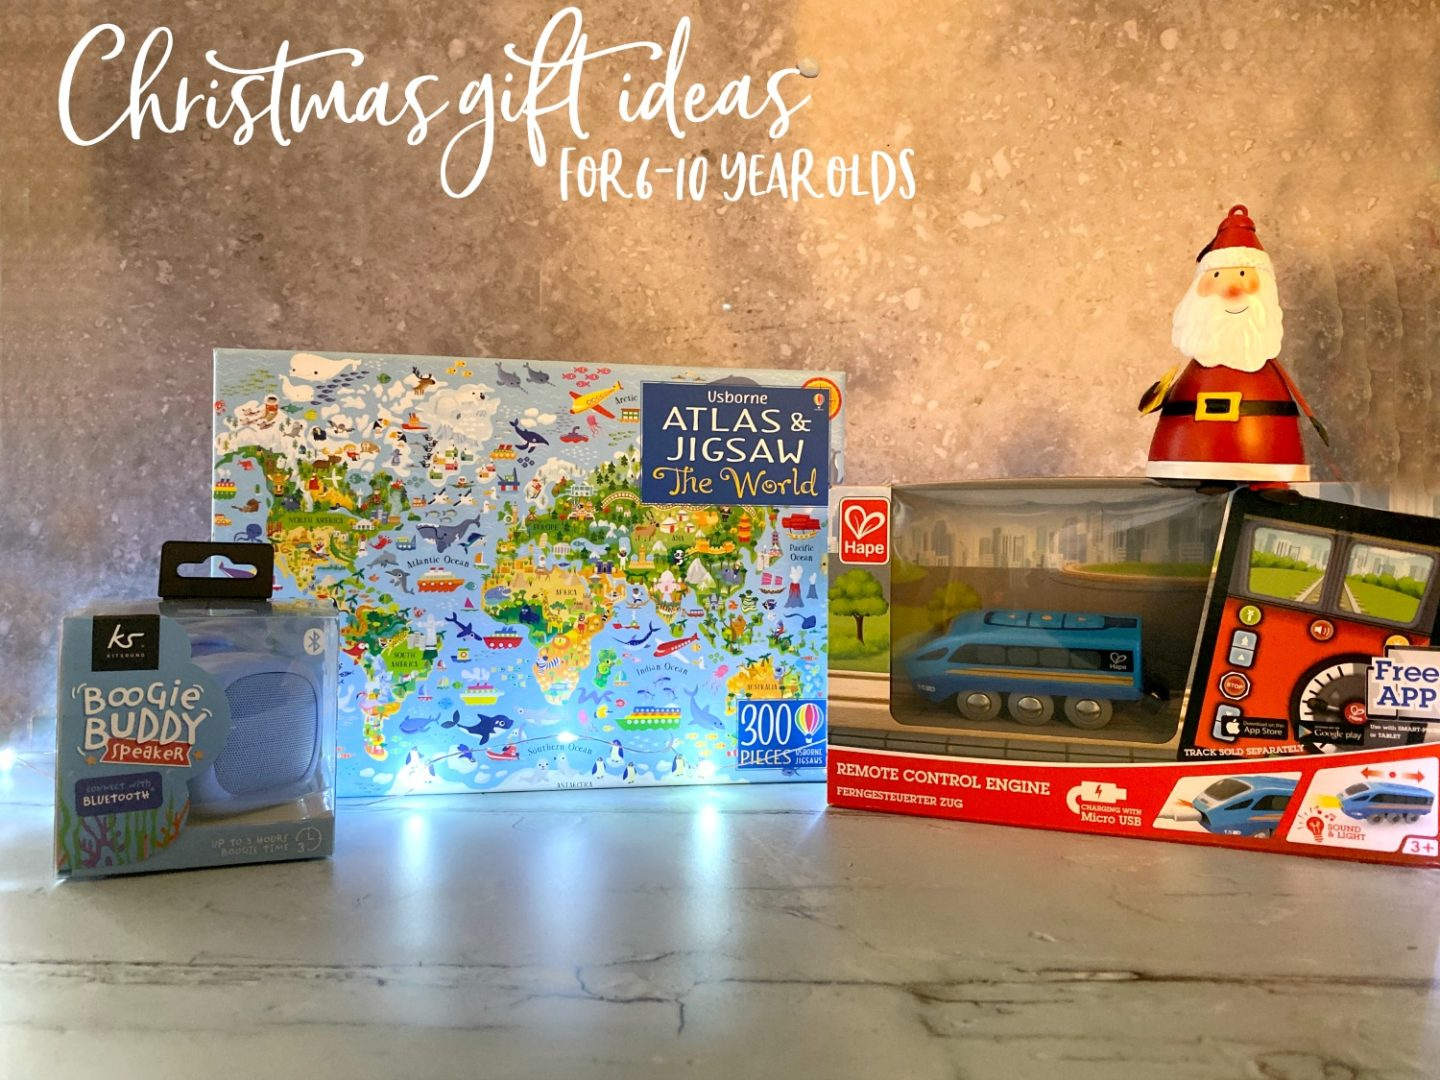 Christmas Gift Guide 6-10 year olds